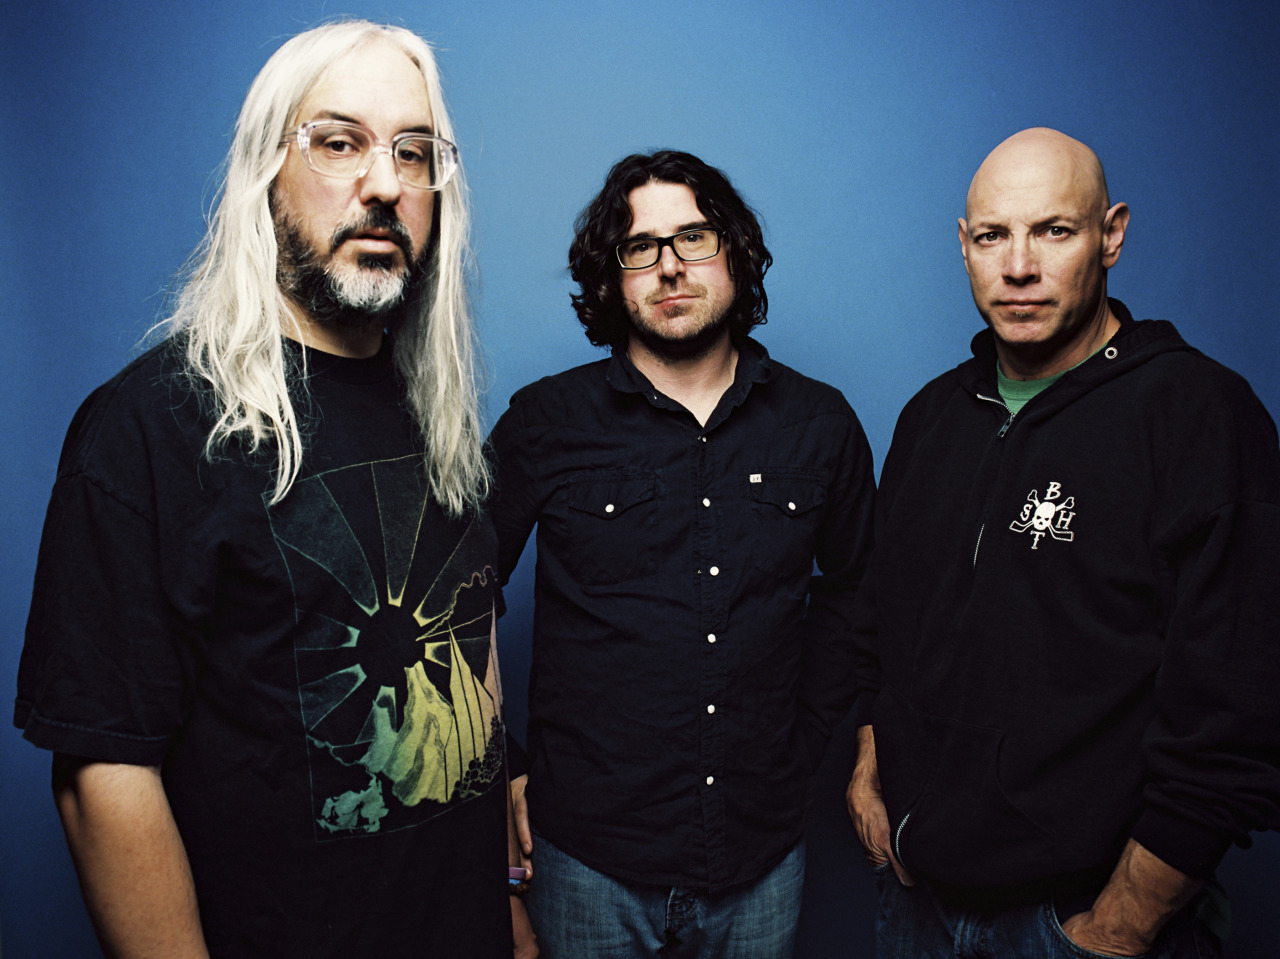 nprmusic:  Dinosaur Jr. sounds just as vital and intense as it did when it first formed 28 years ago. Hear the brawny rock trio play tracks from I Bet On Sky on World Cafe. Photo: Brantley Gutierrez